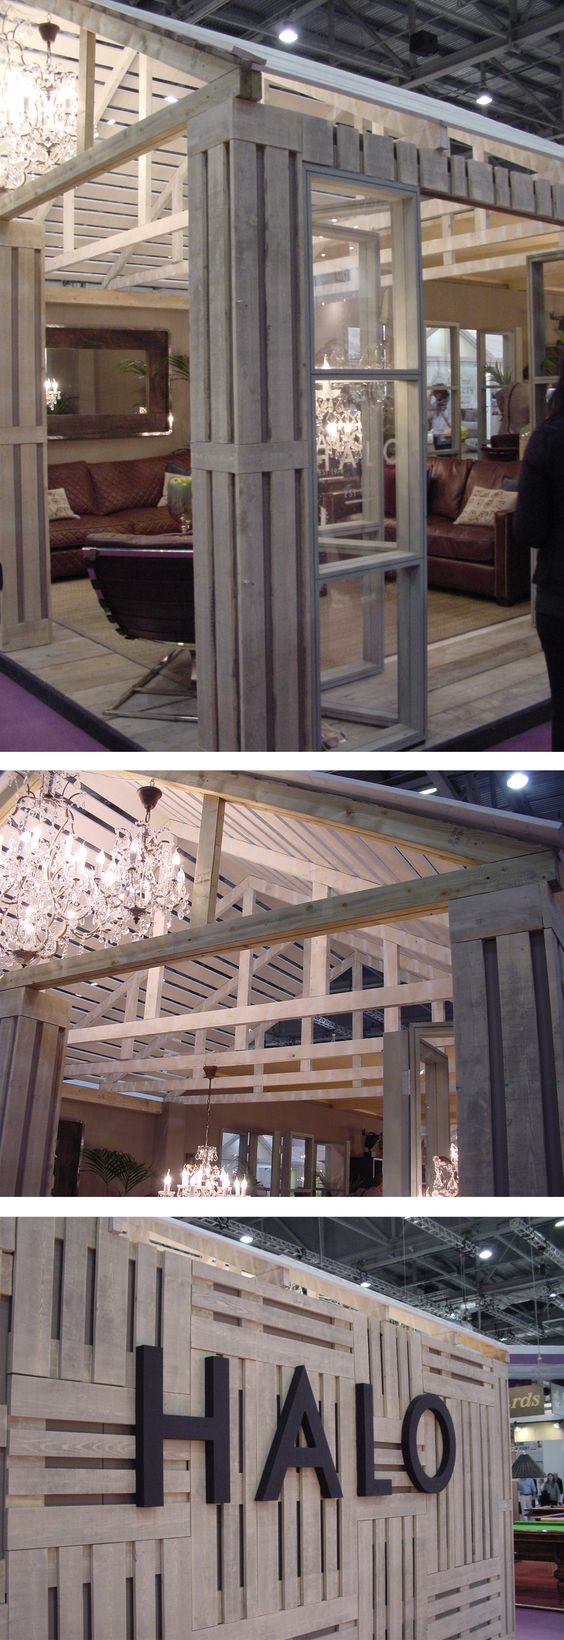 Exhibition Booth London : Exhibition stand made from wood pallets by halo at grand